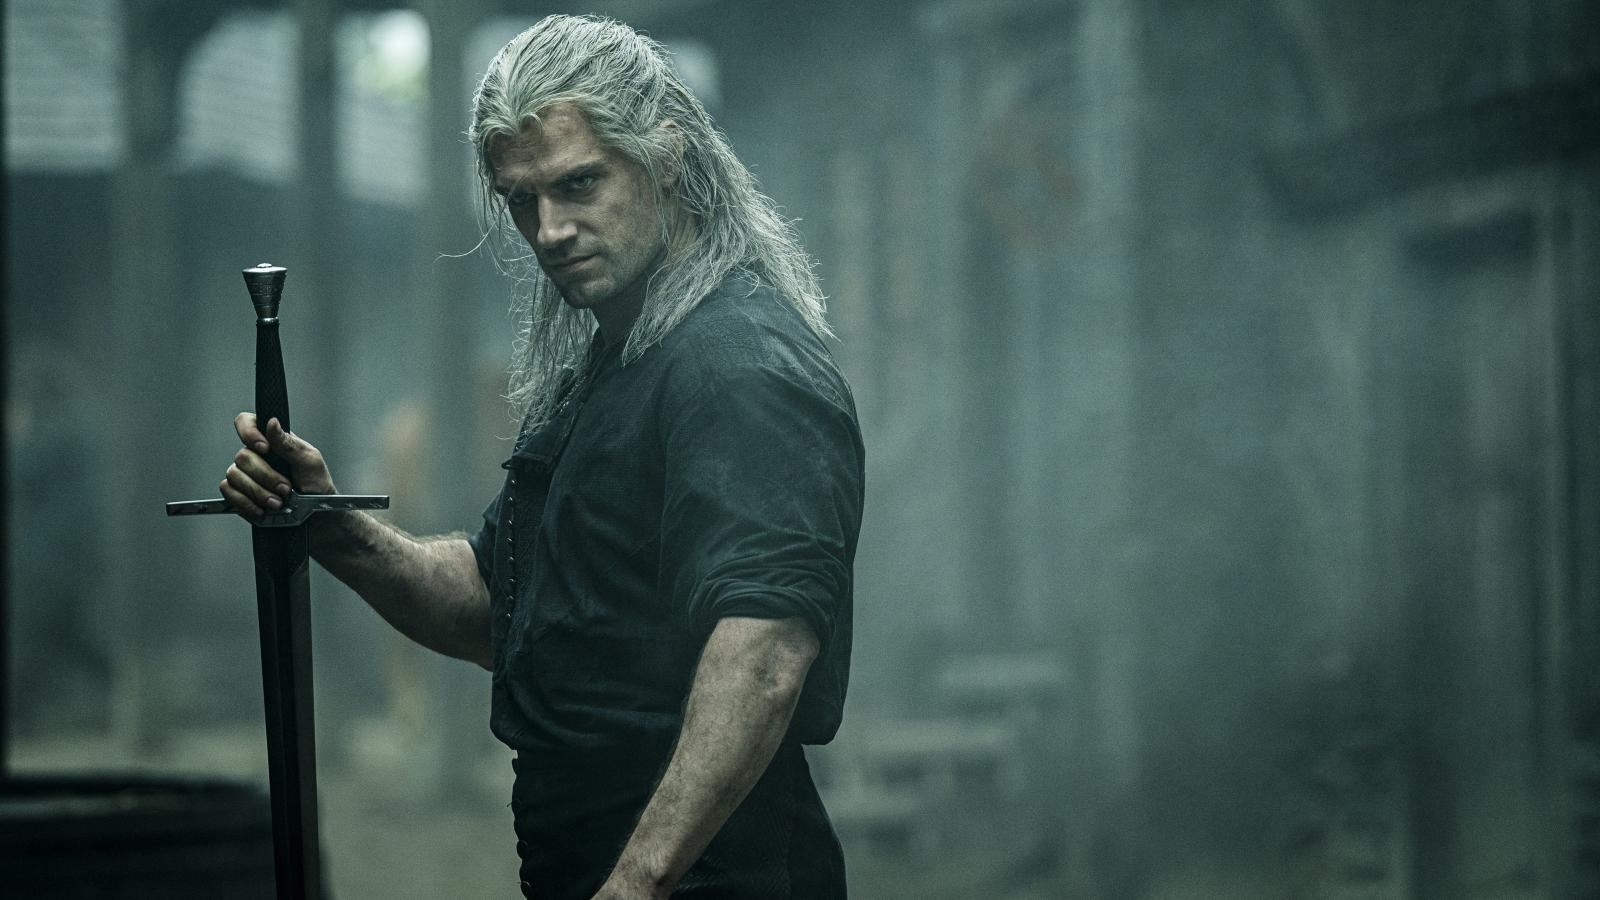 Henry Cavill's 'The Witcher' is getting a prequel series on Netflix